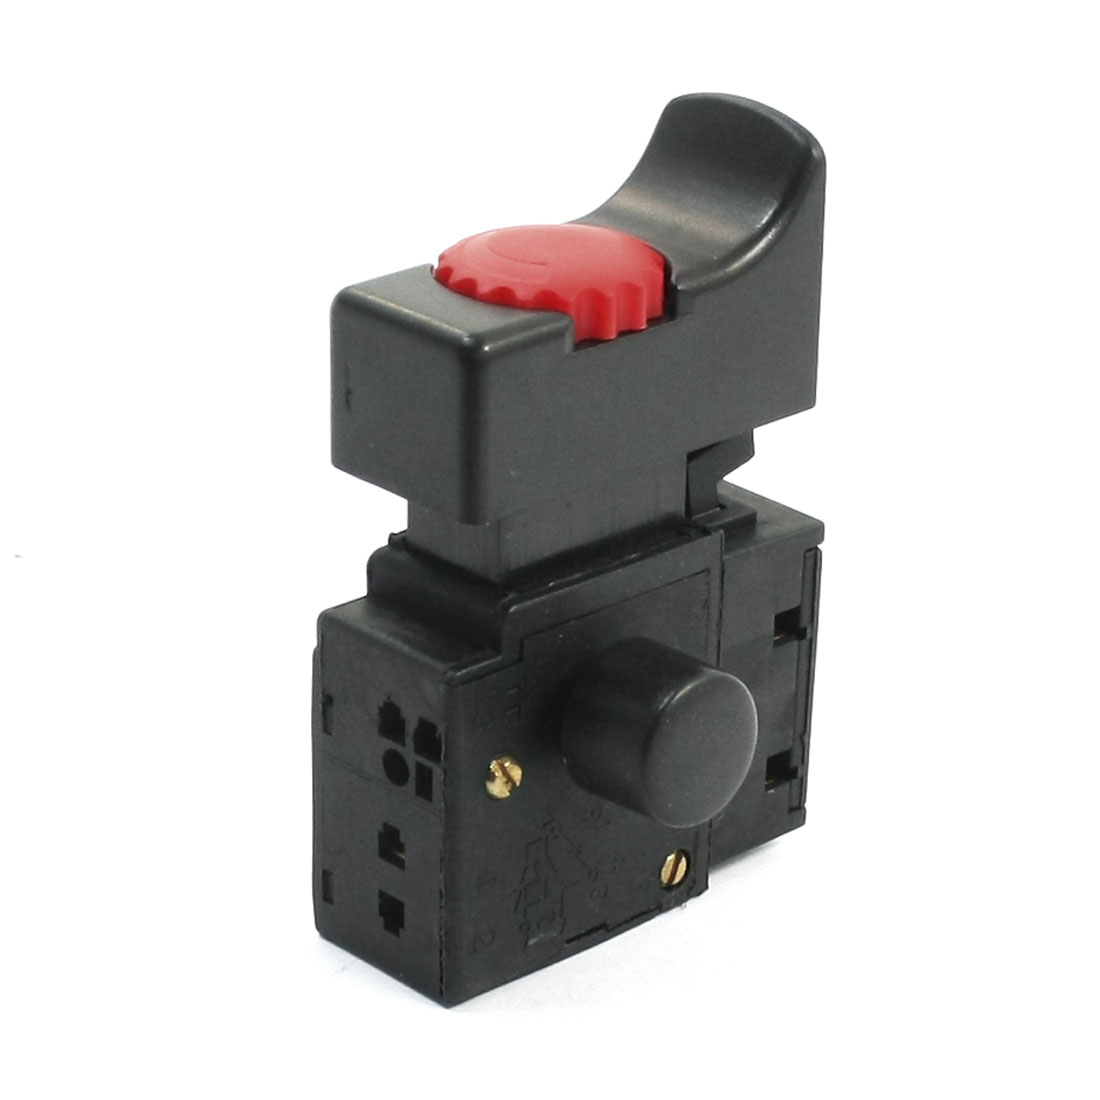 Repairing Locking DPST Trigger Switch FA2-4/1BEK for Electric Drill